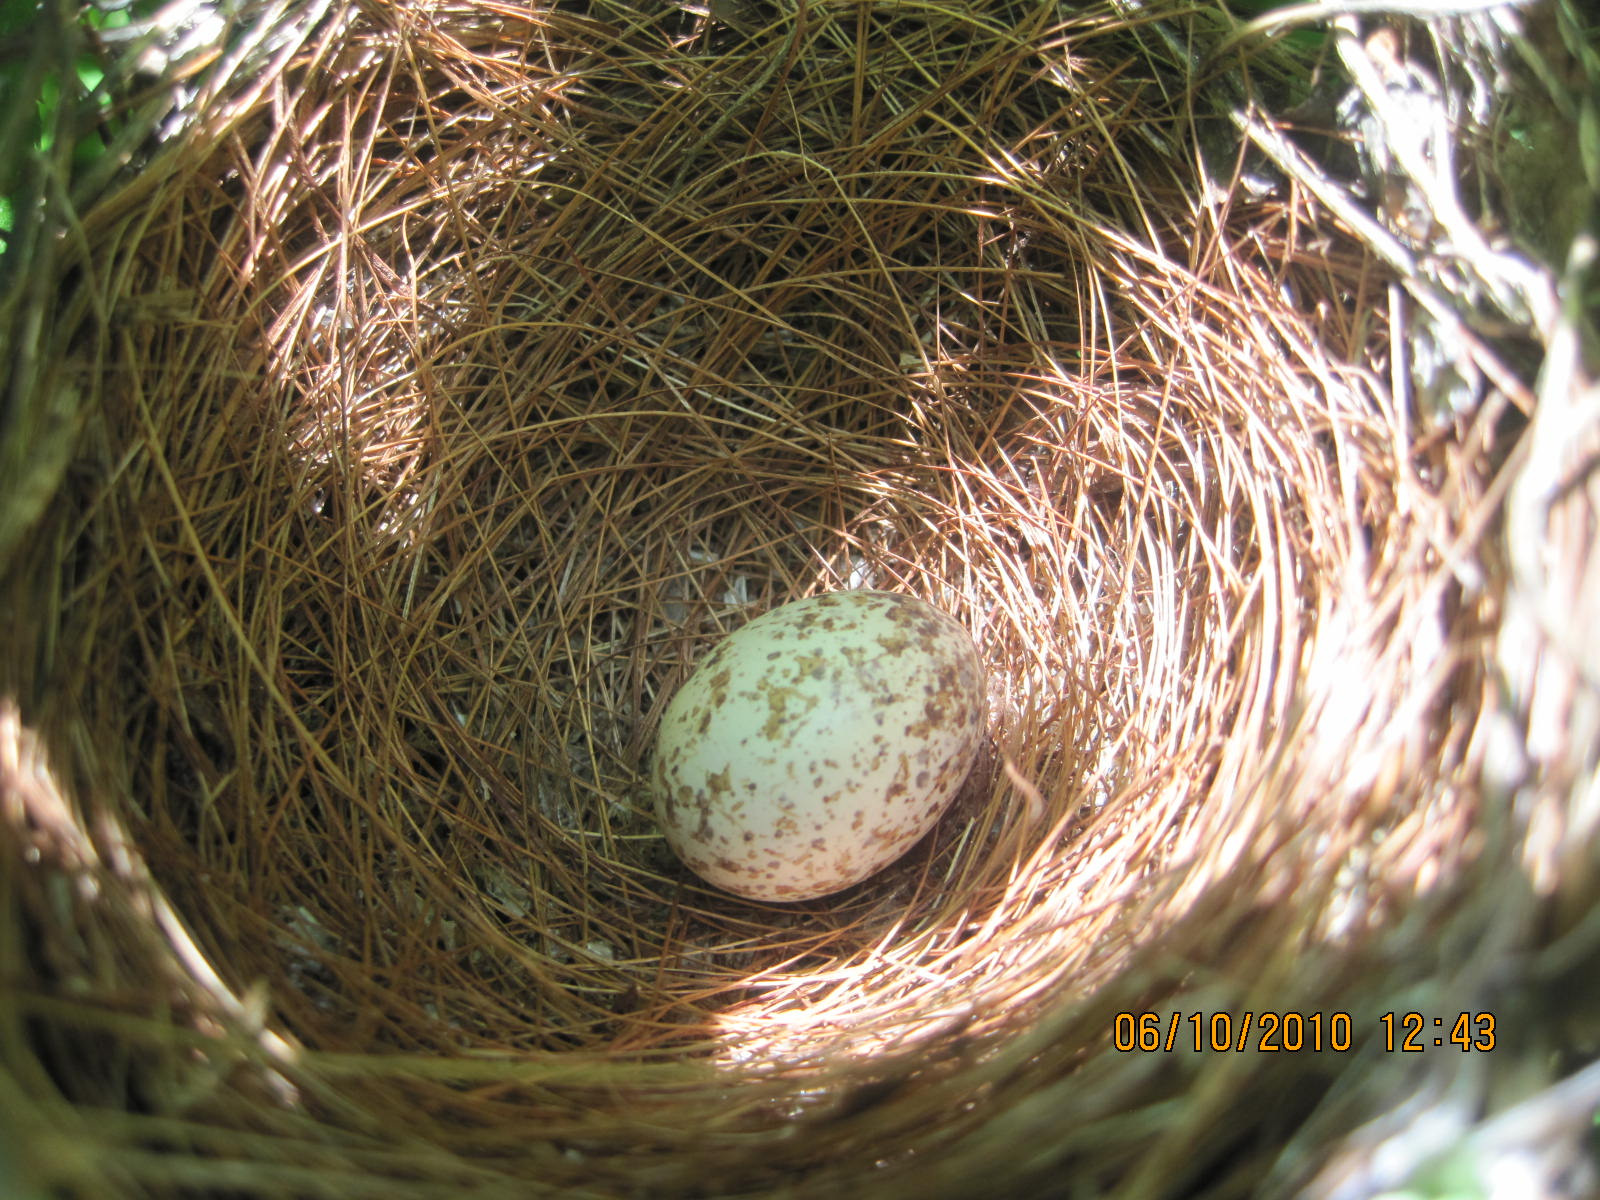 Cardinal Nests And Eggs Images & Pictures - Becuo